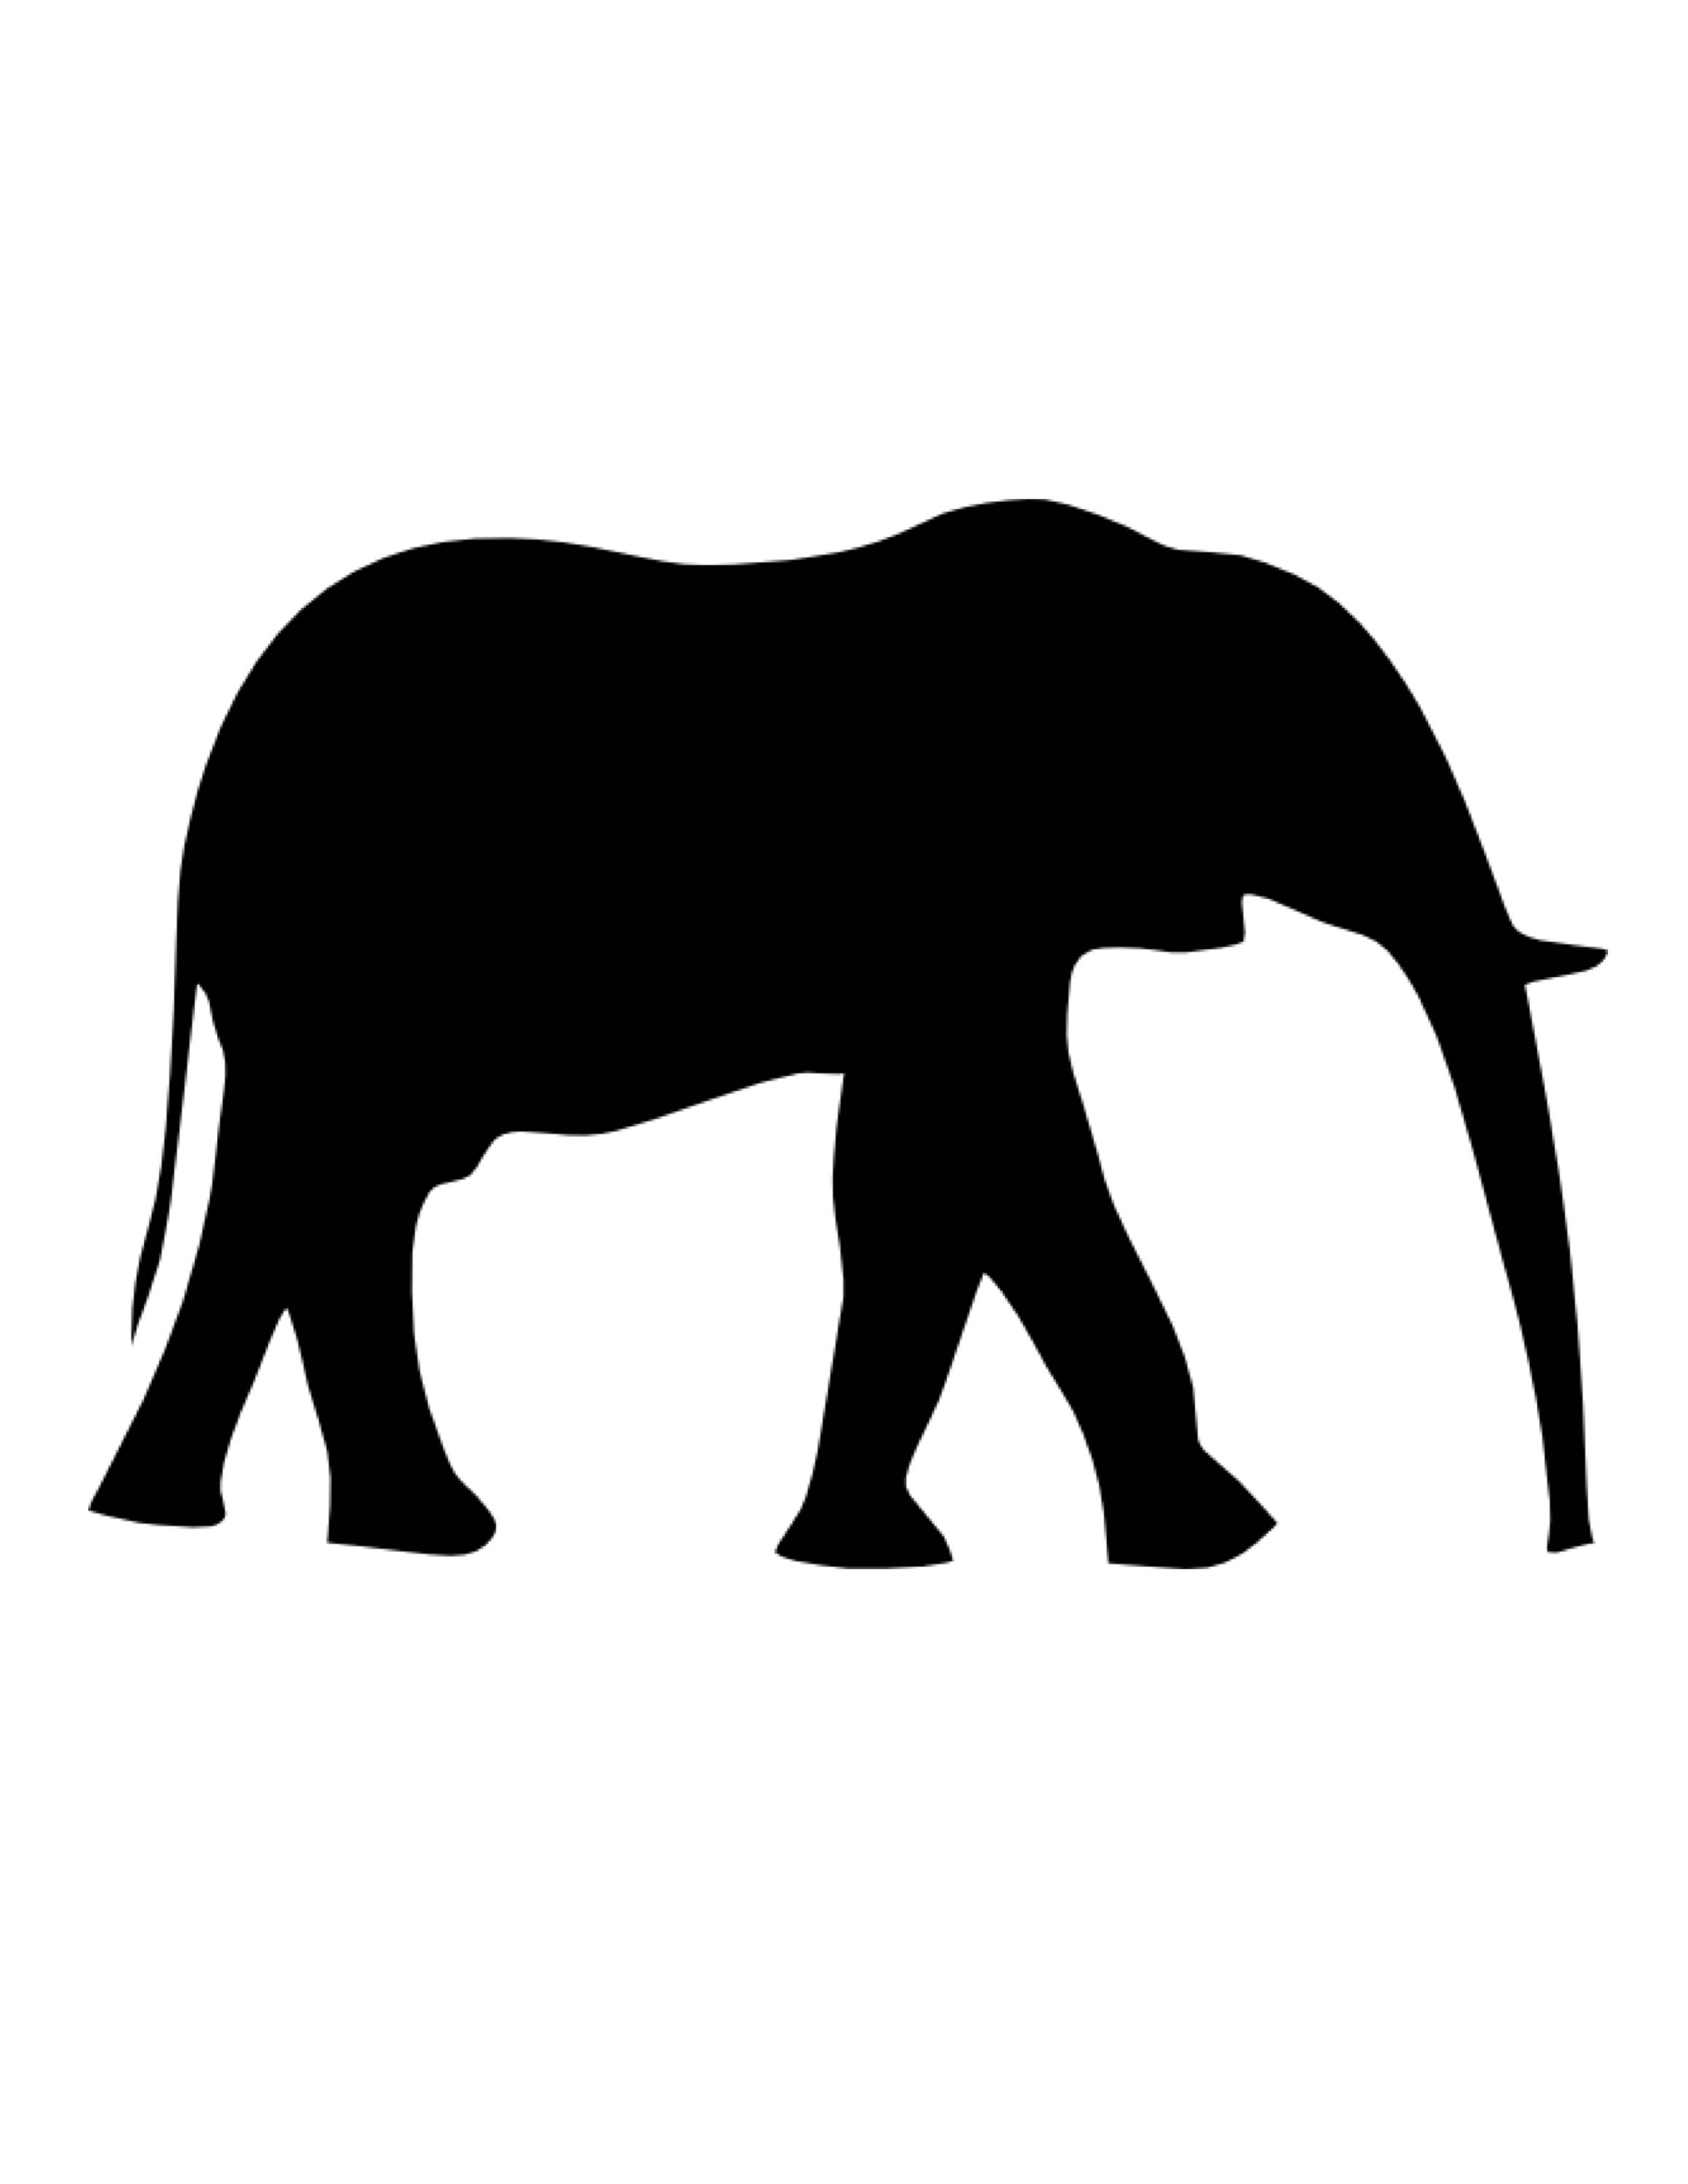 2318x3000 Pack Of 3 Elephant Stencils Made From 4 Ply Mat Board, 11x14, 8x10